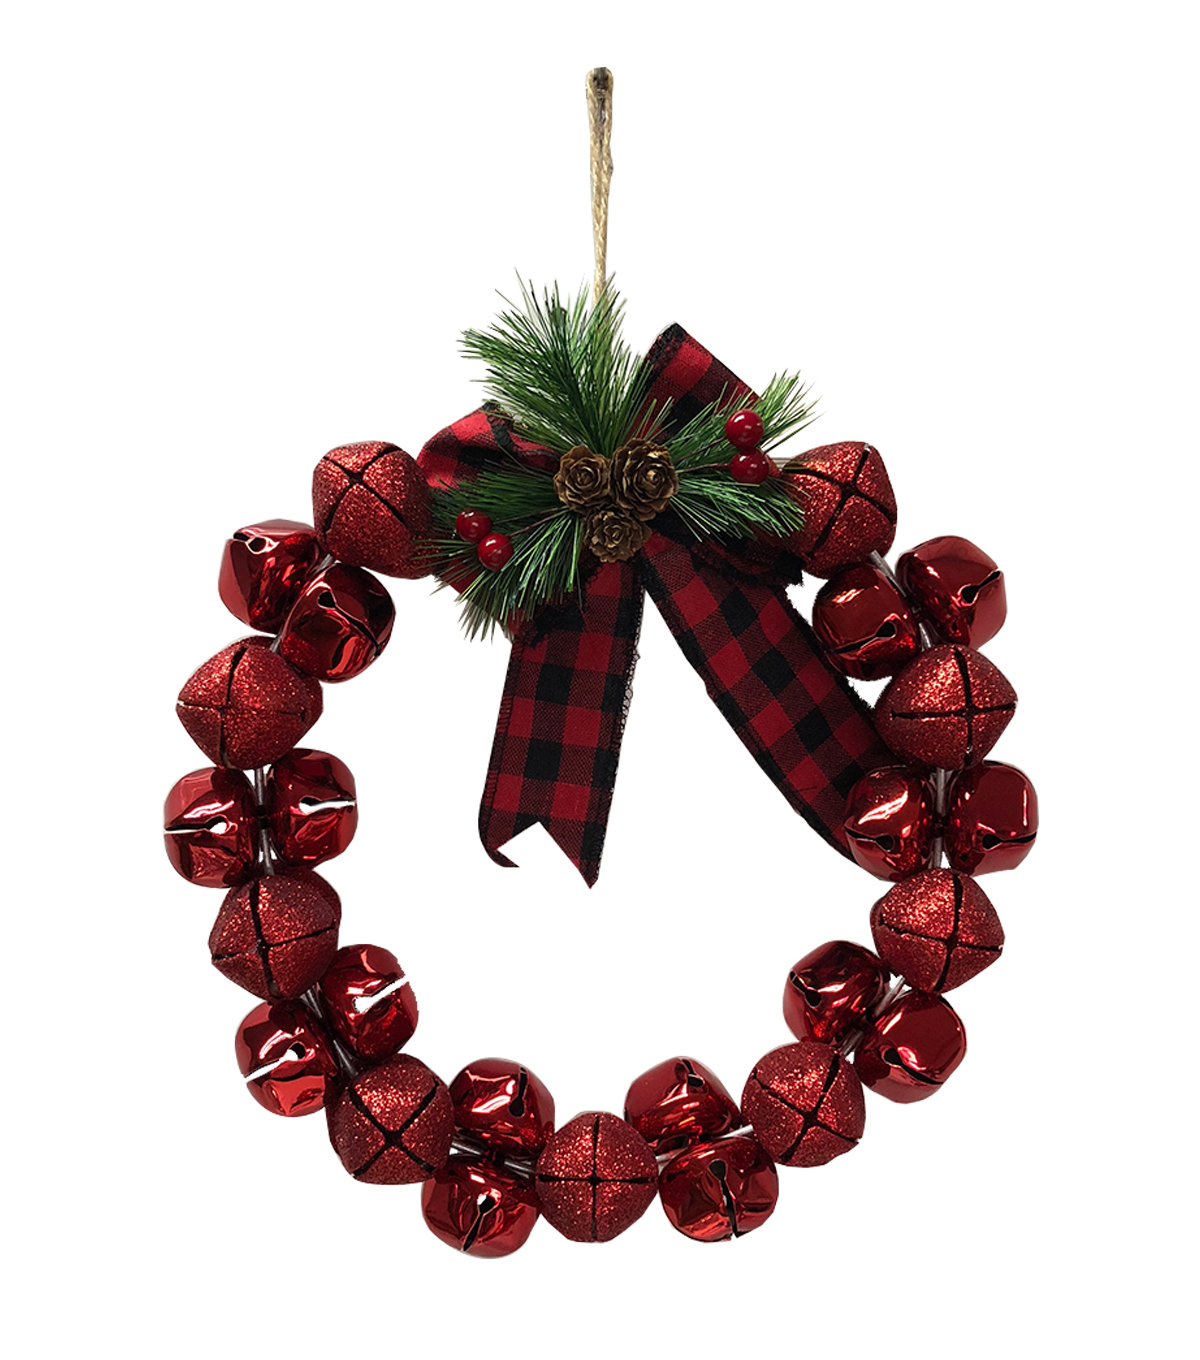 Maker\u0027s Holiday Christmas 11\u0027\u0027x13.75\u0027\u0027 Jingle Bells Wreath-Red